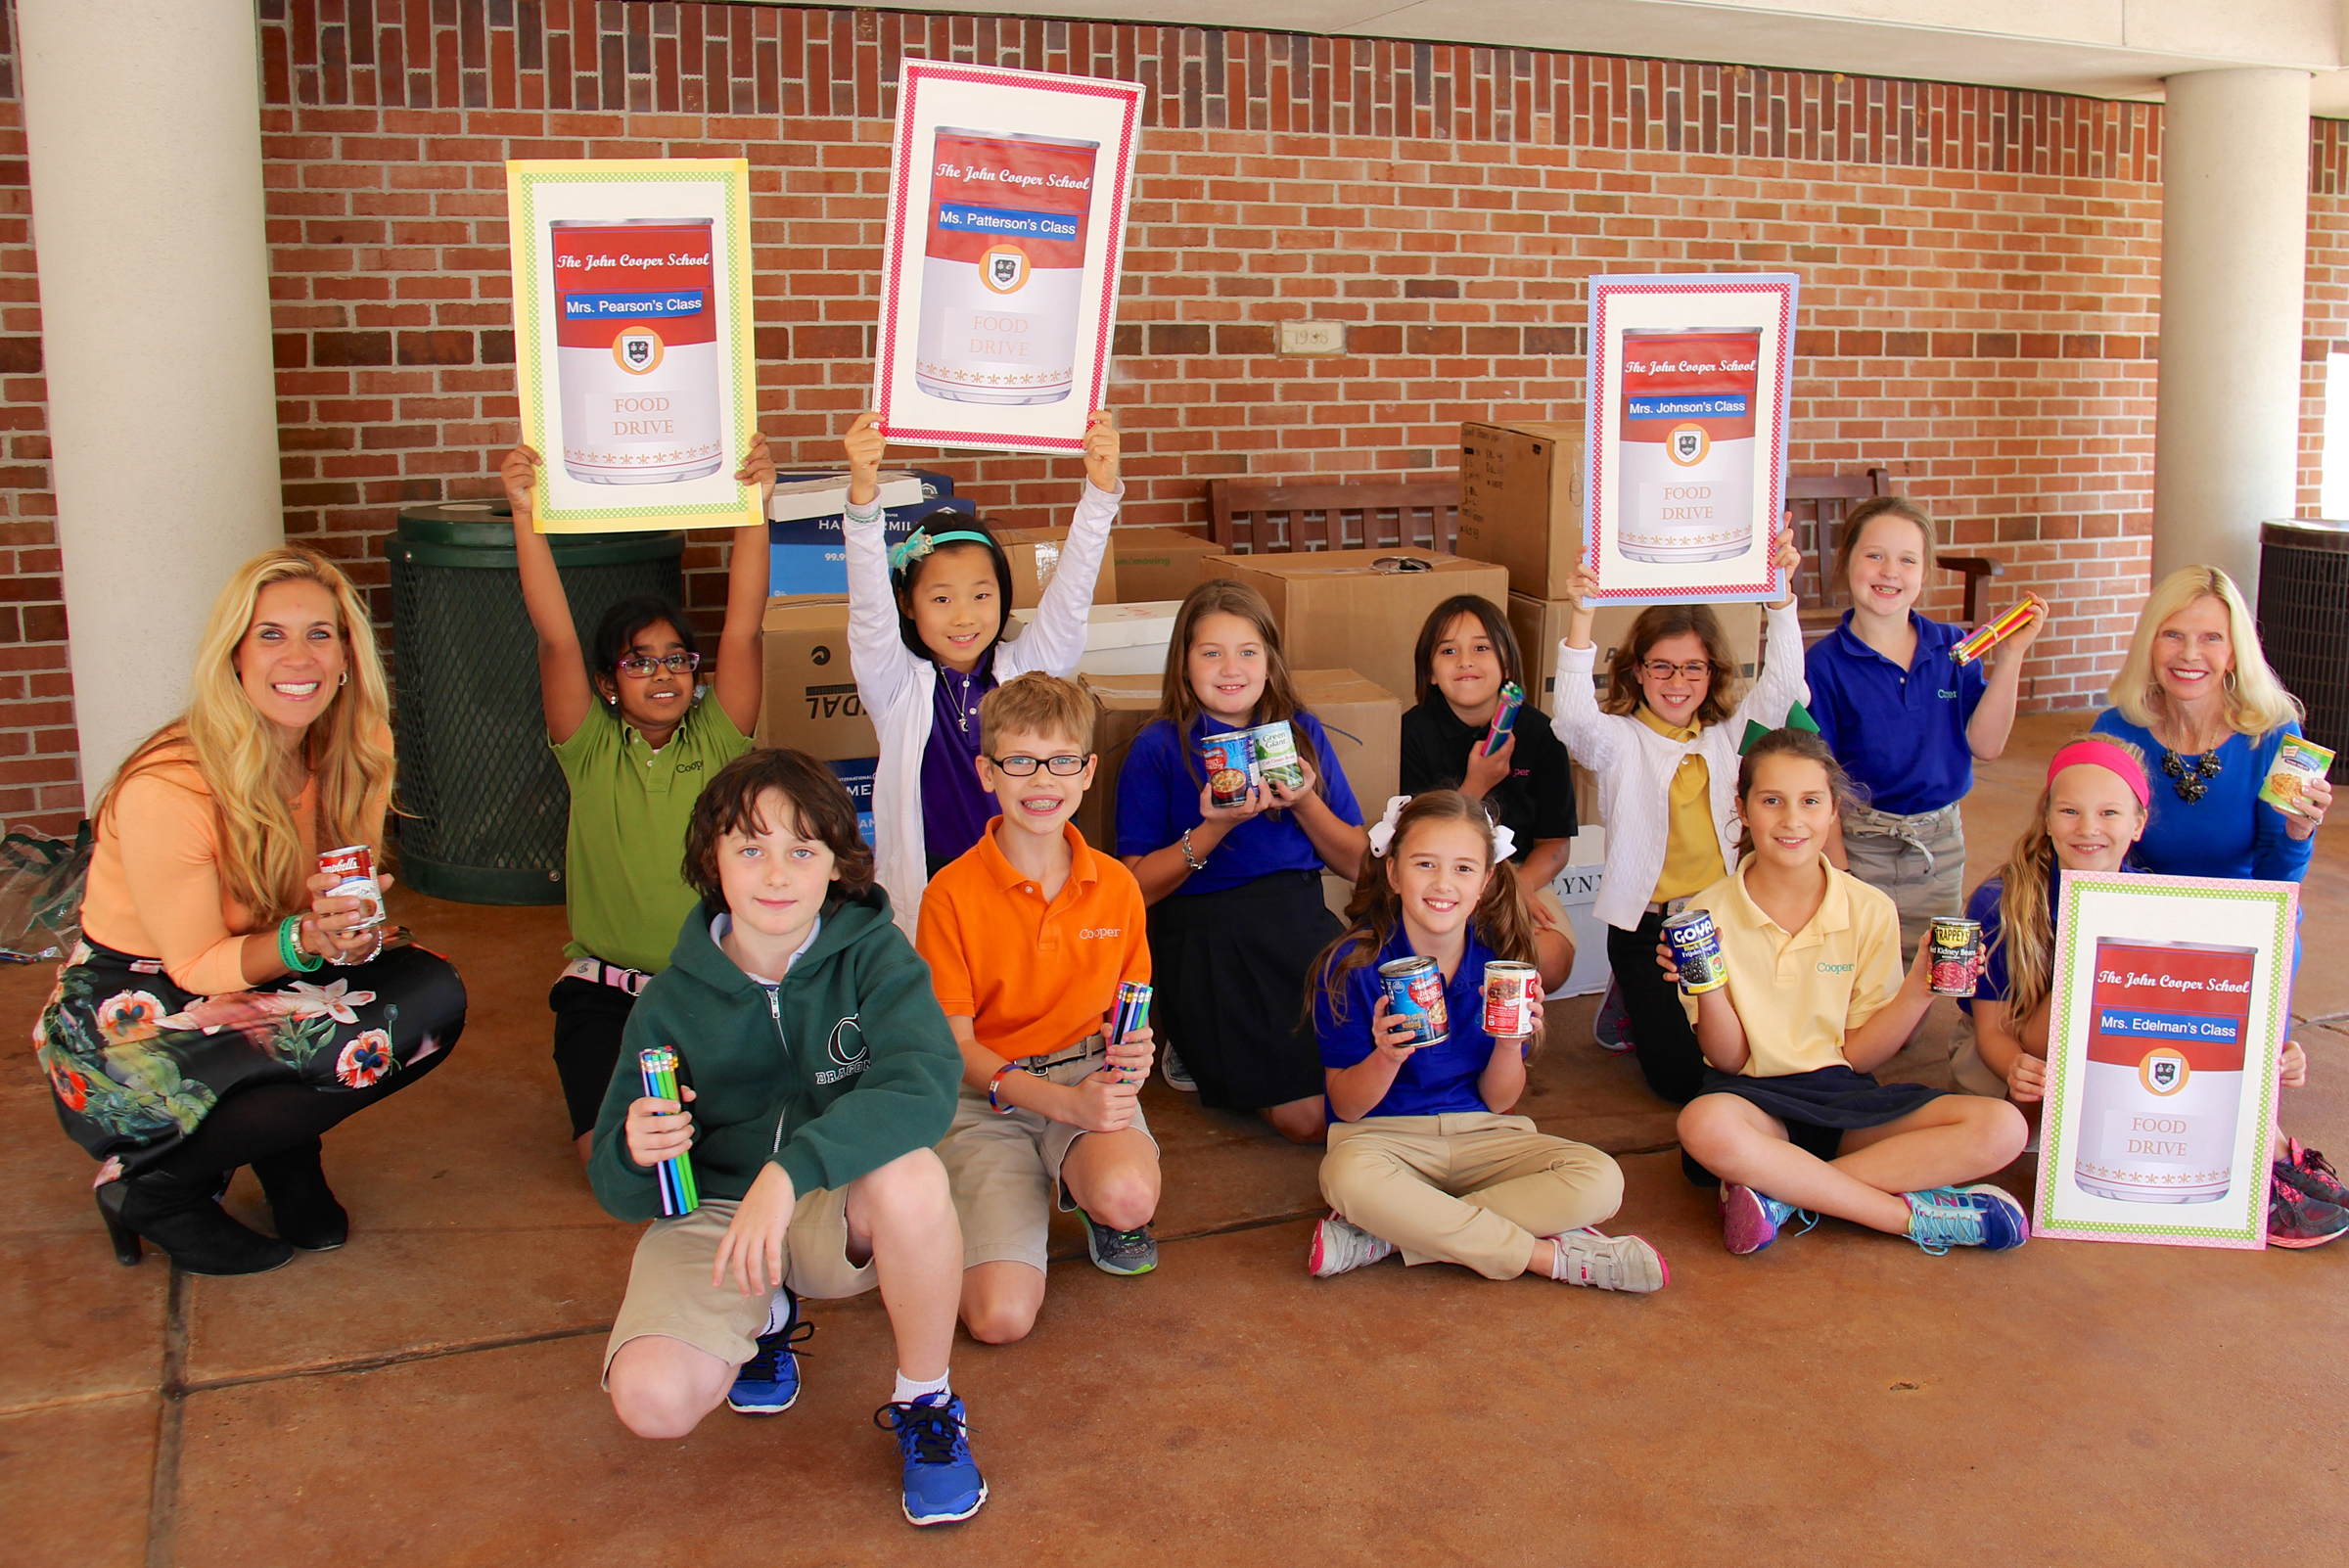 The John Cooper School Interfaith Food Pantry Donation